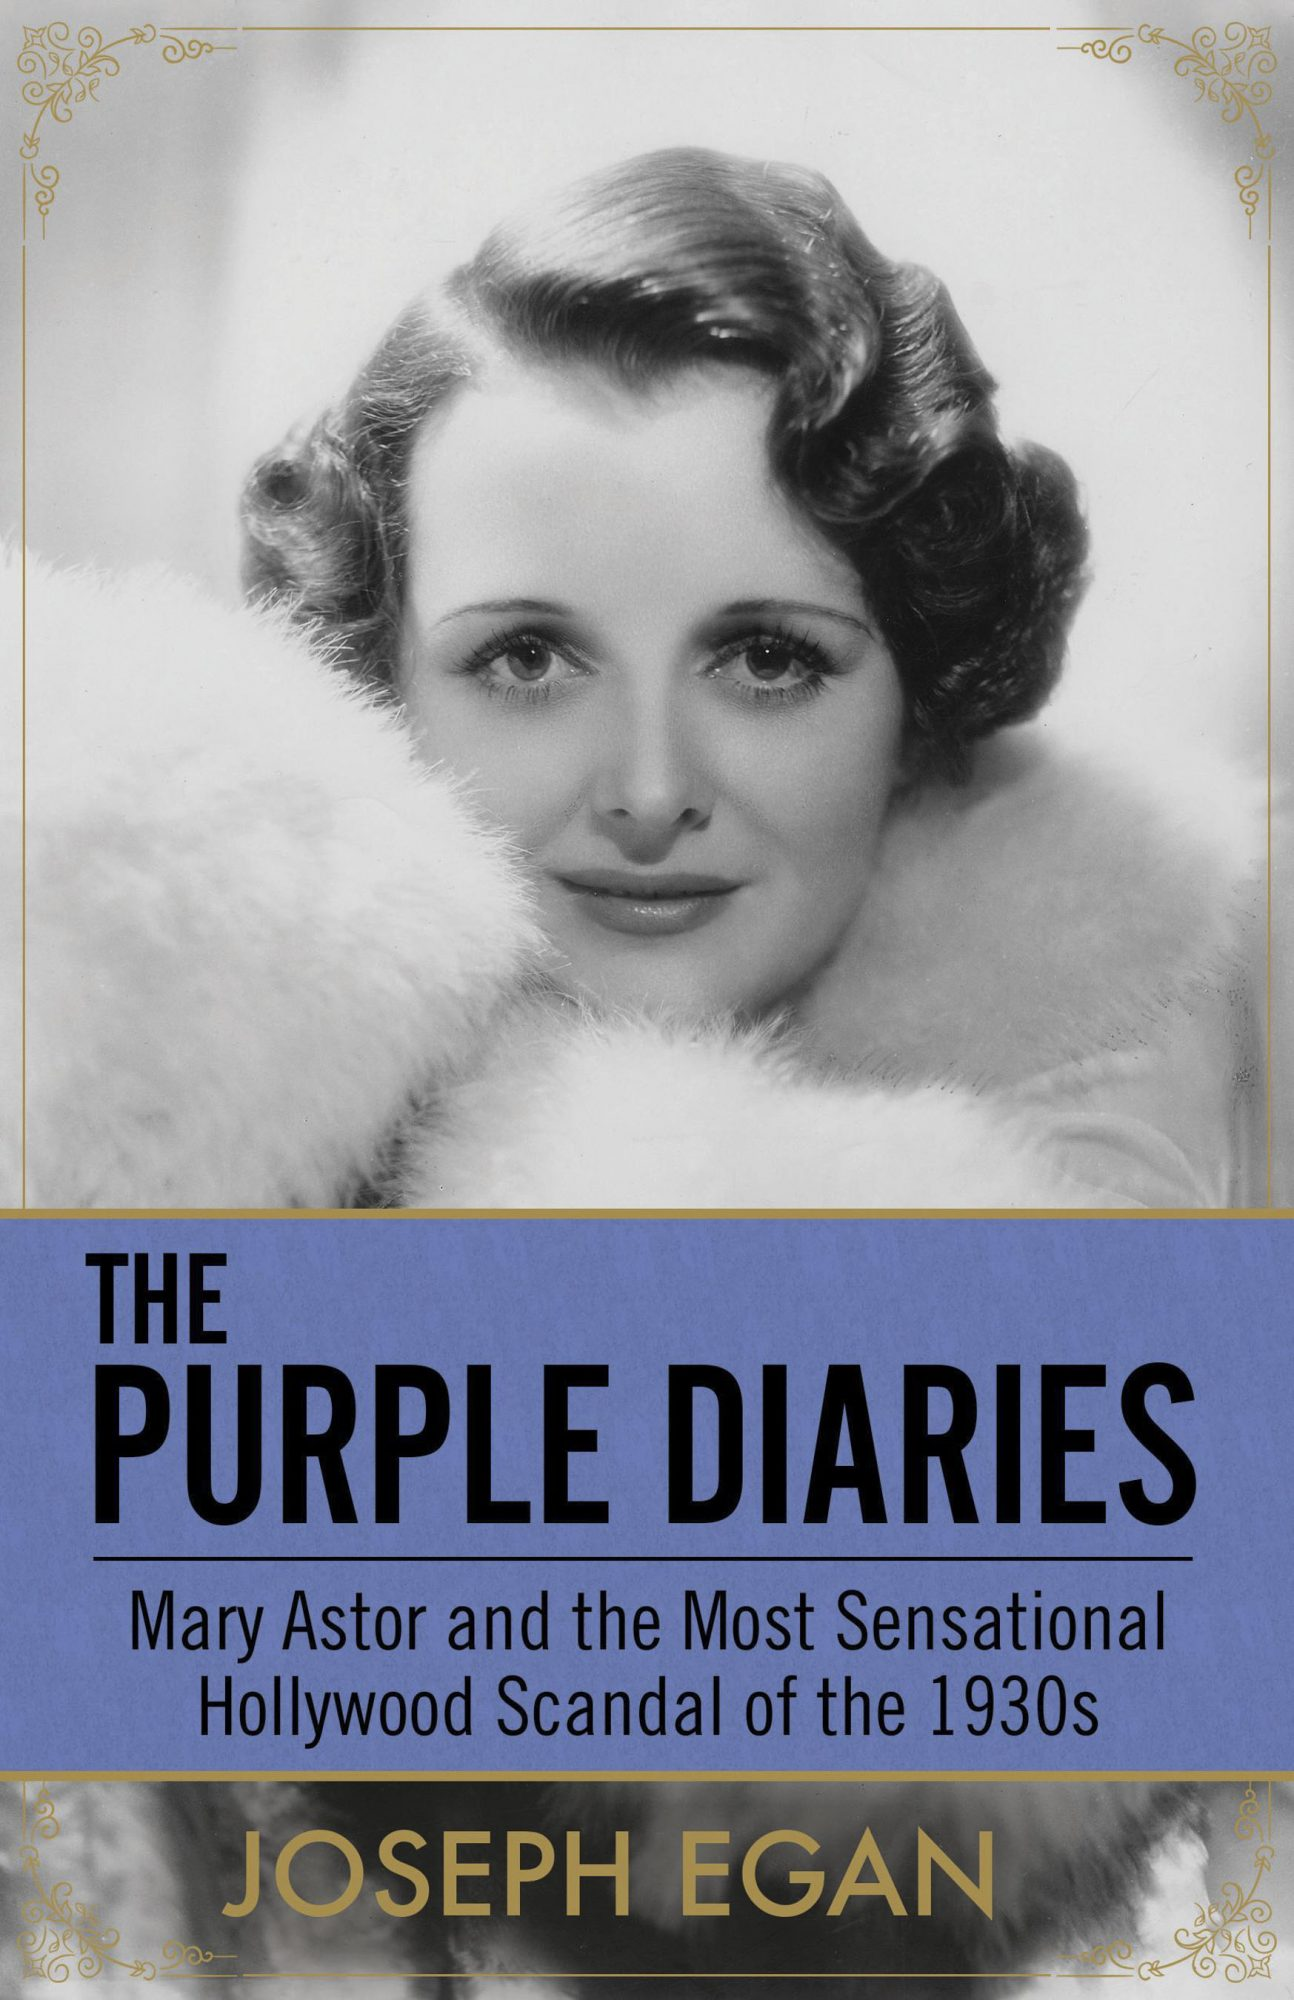 The Purple Diaries: Mary Astor and the Most Sensational Hollywood Scandal of the 1930s, by Joseph Egan